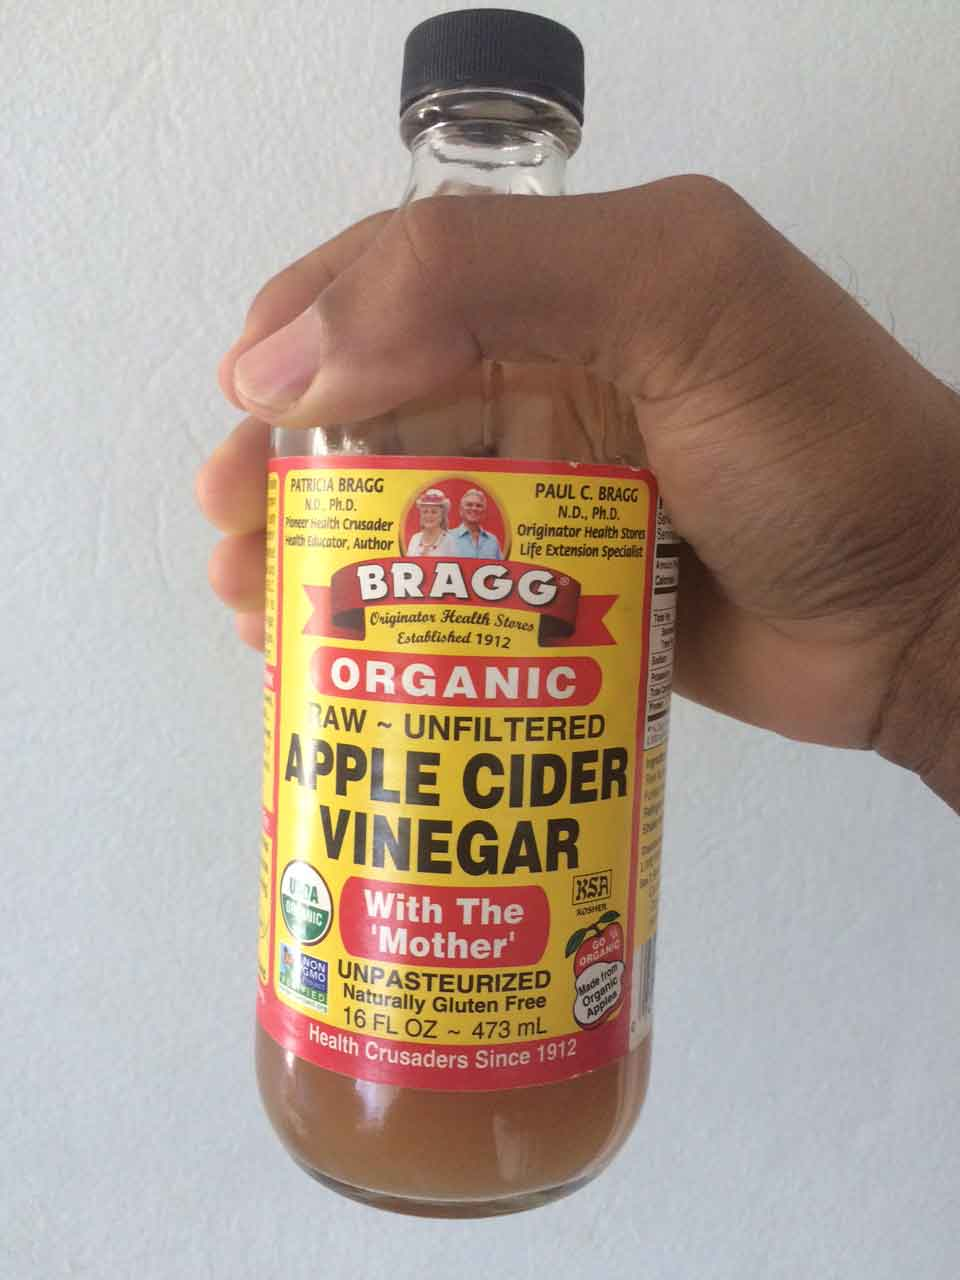 Can apple cider vinegar help with weight loss? - CNN